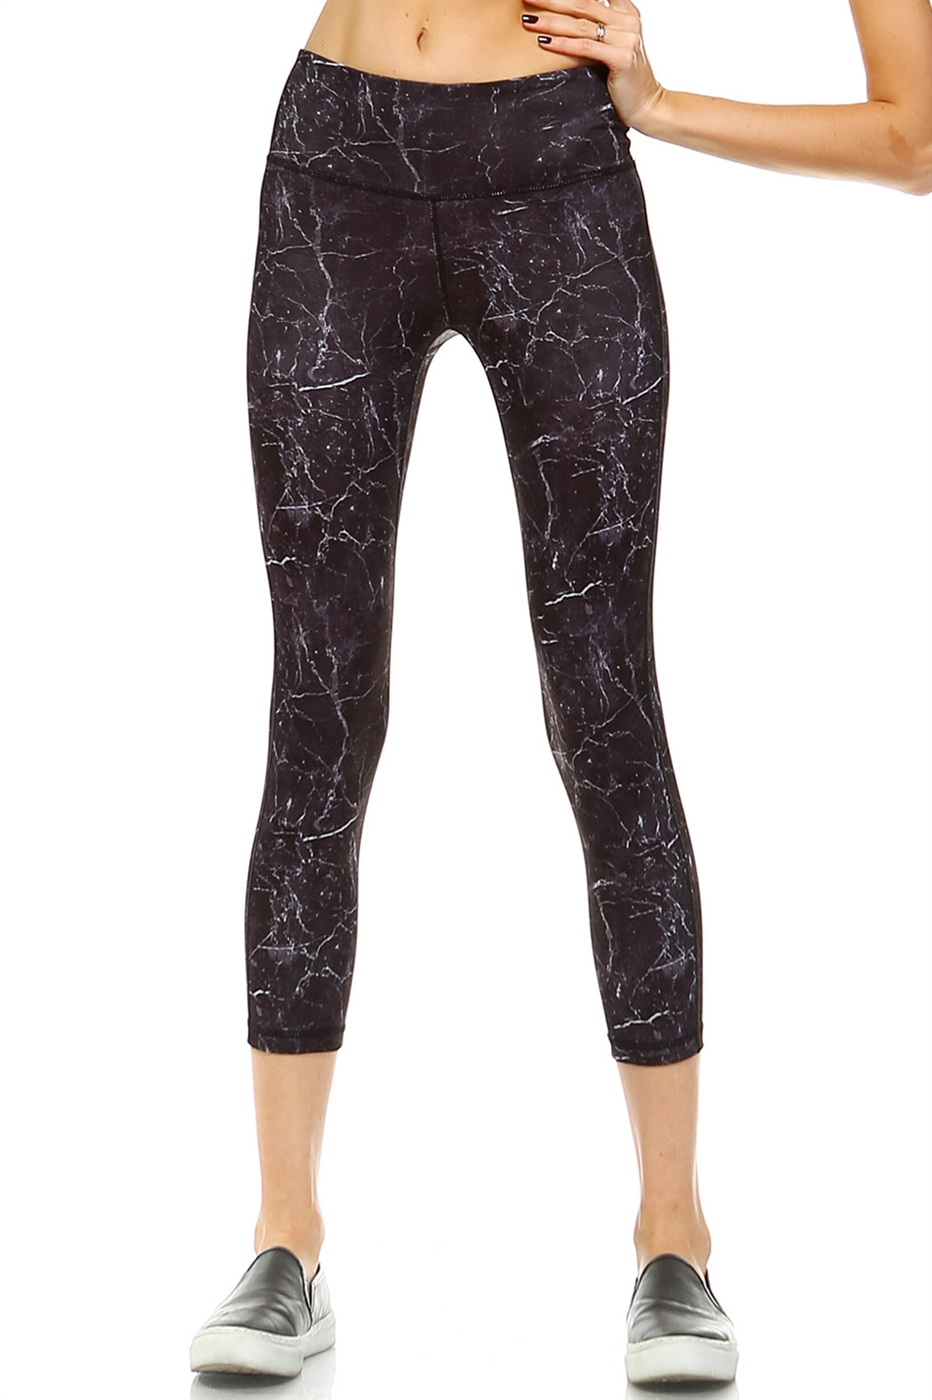 STONE PRINT LEGGINGS - orangeshine.com